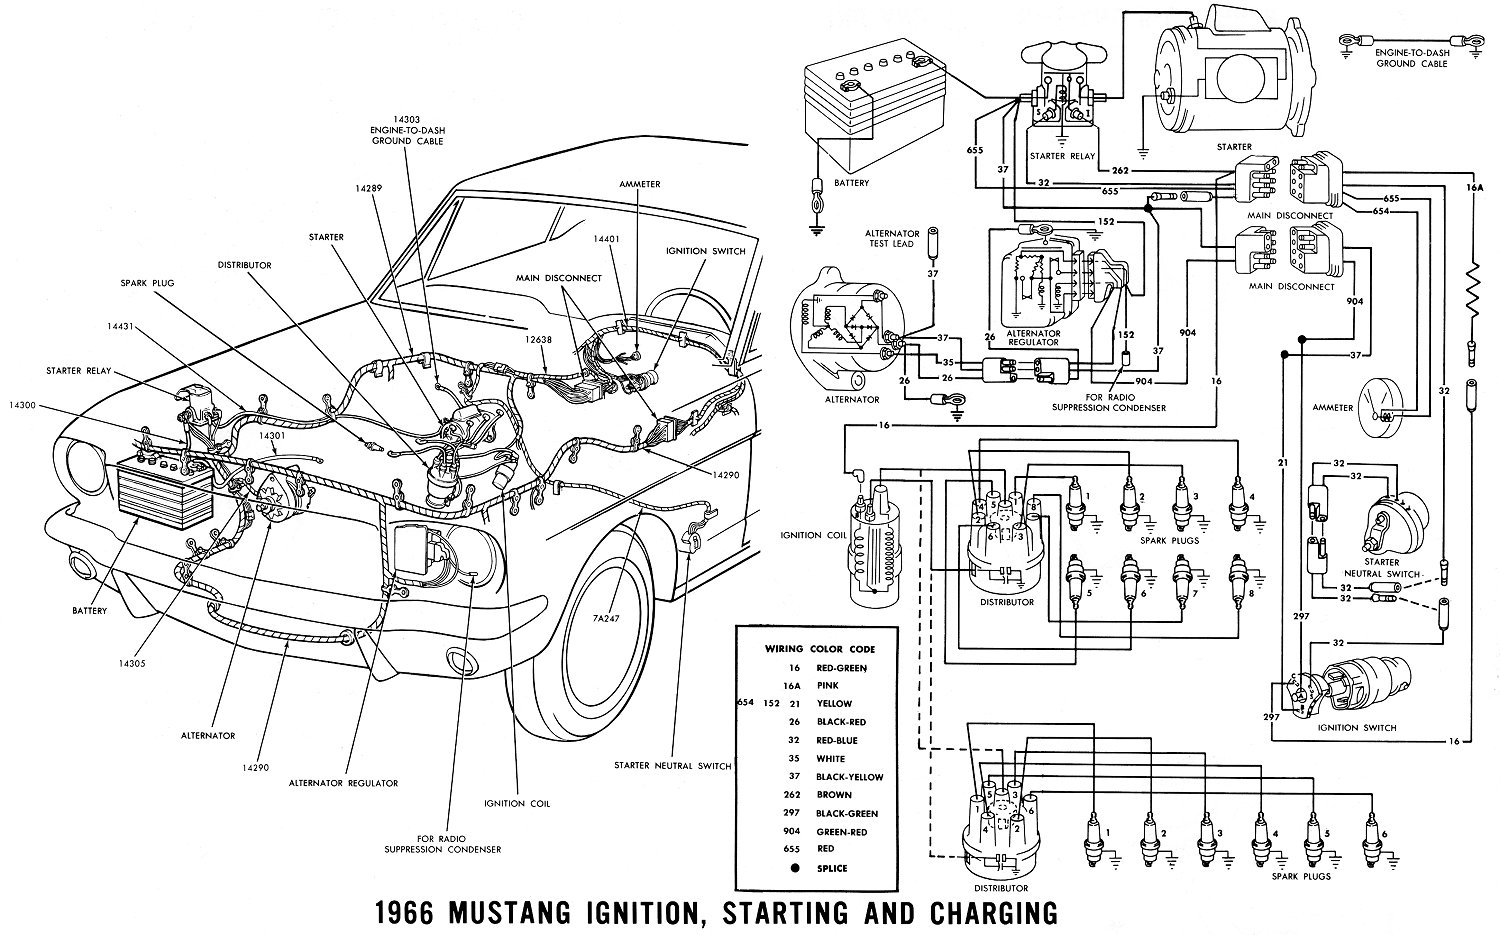 [SCHEMATICS_4PO]  47581 66 Mustang Tachometer Wiring Diagram | Wiring Library | 1966 Mustang Tachometer Wiring |  | Wiring Library